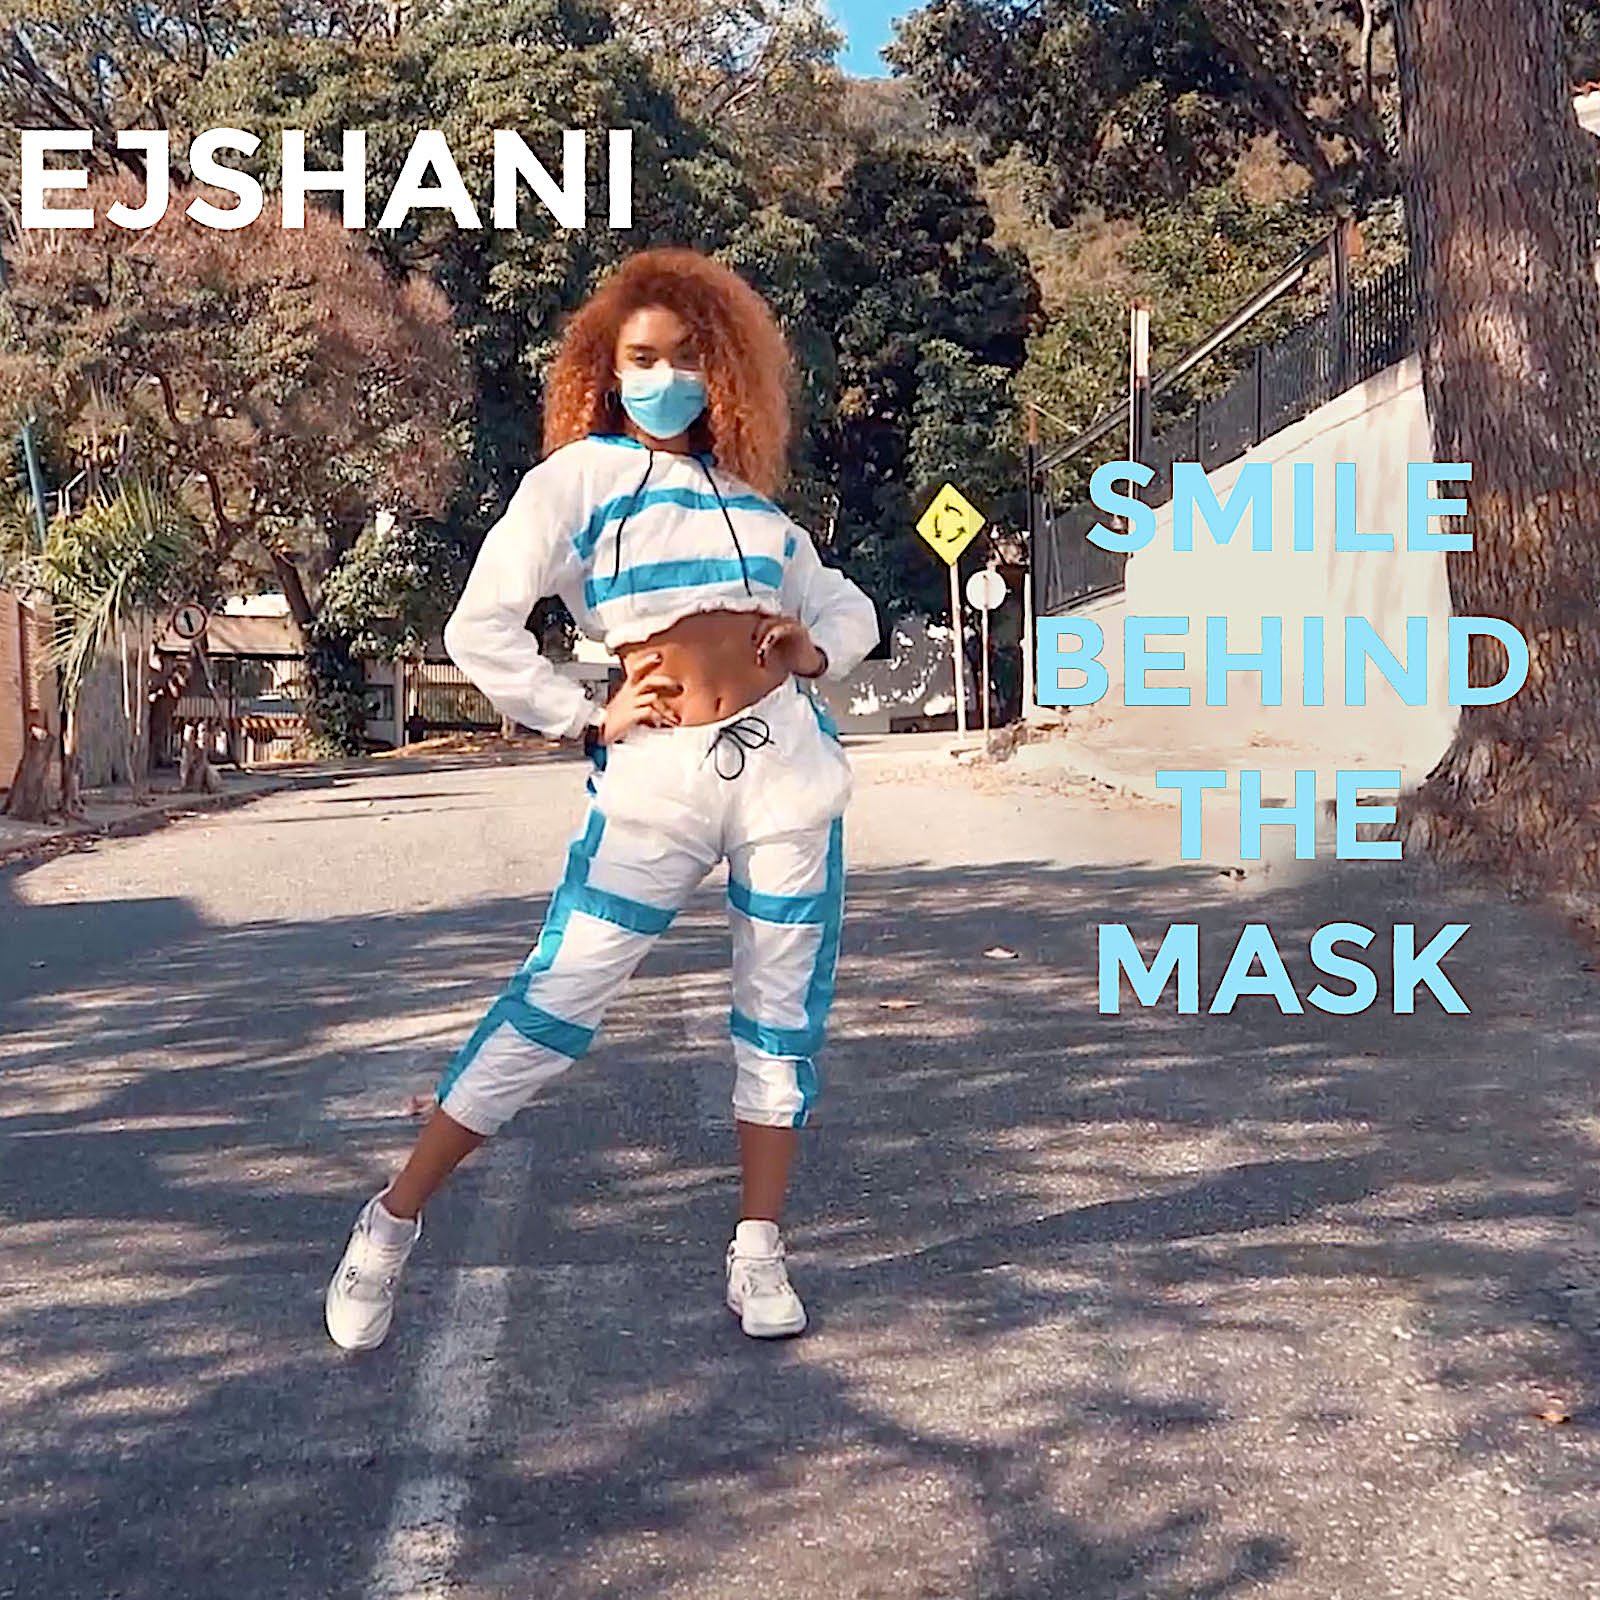 """Ejshani Announces New Single, """"Smile Behind The Mask,"""" Available March 5"""